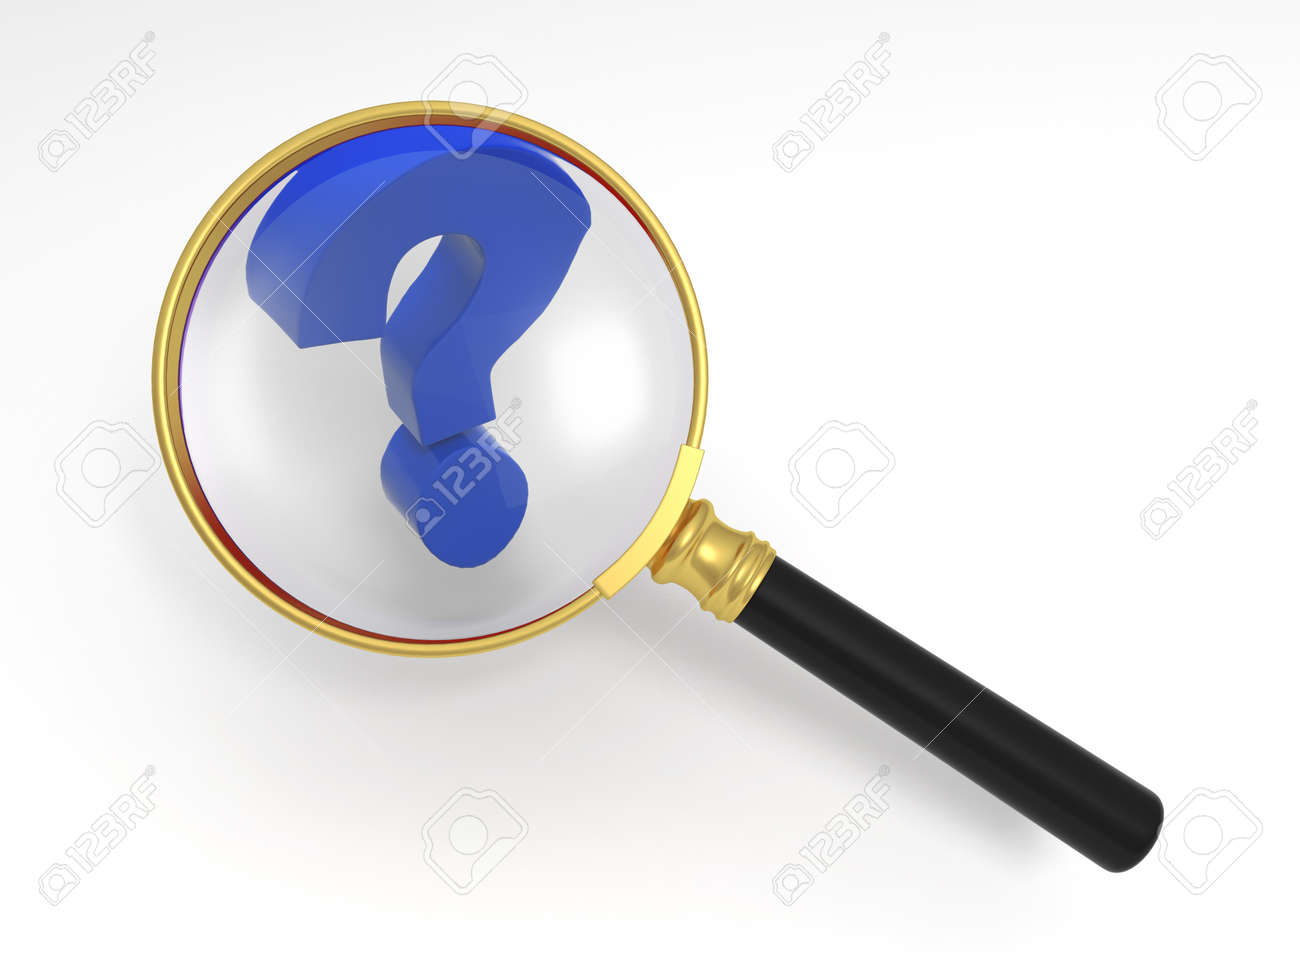 3d person with magnifying glass and question mark stock images image - Magnifying Glass And Question Mark Stock Photo 15405008